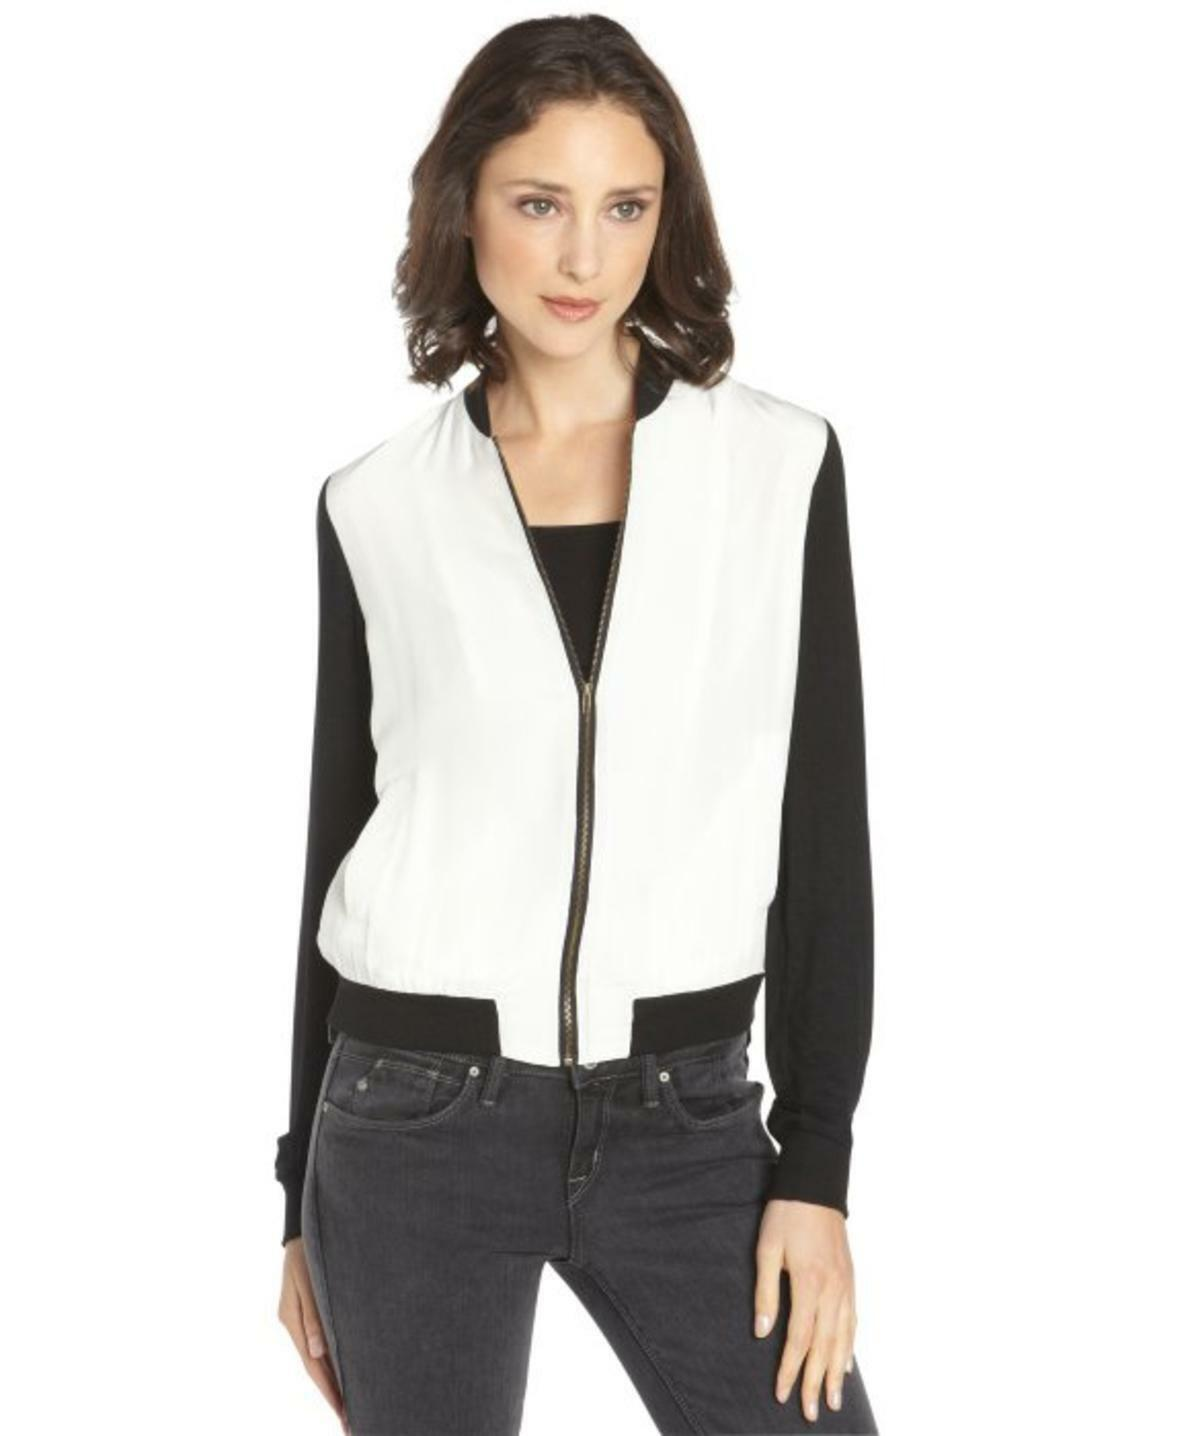 SANCTUARY  faux leather sleeves Weiß zip up jacket sz S new